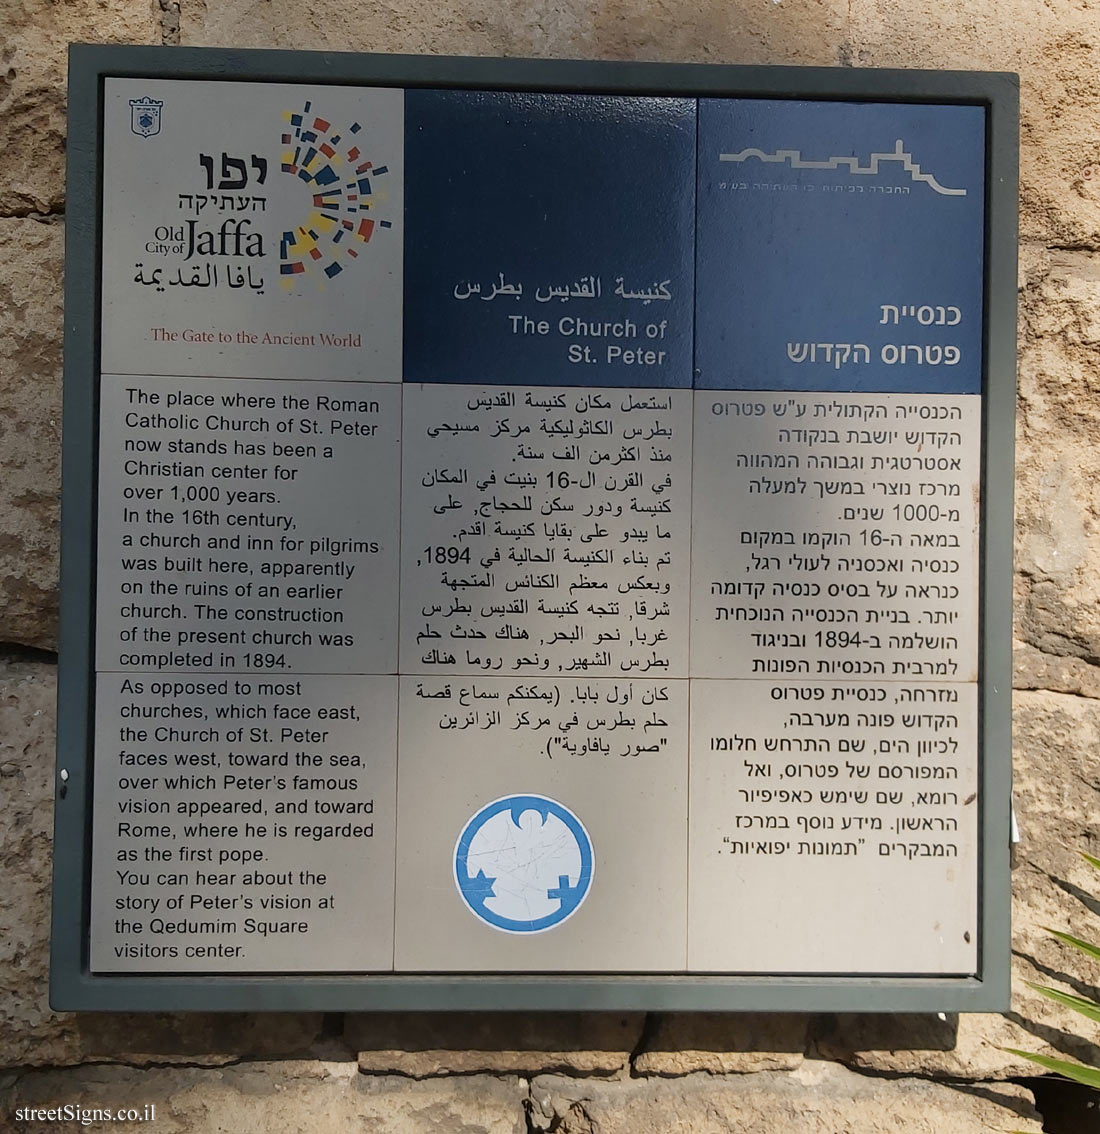 Old Jaffa - The Church of St. Peter